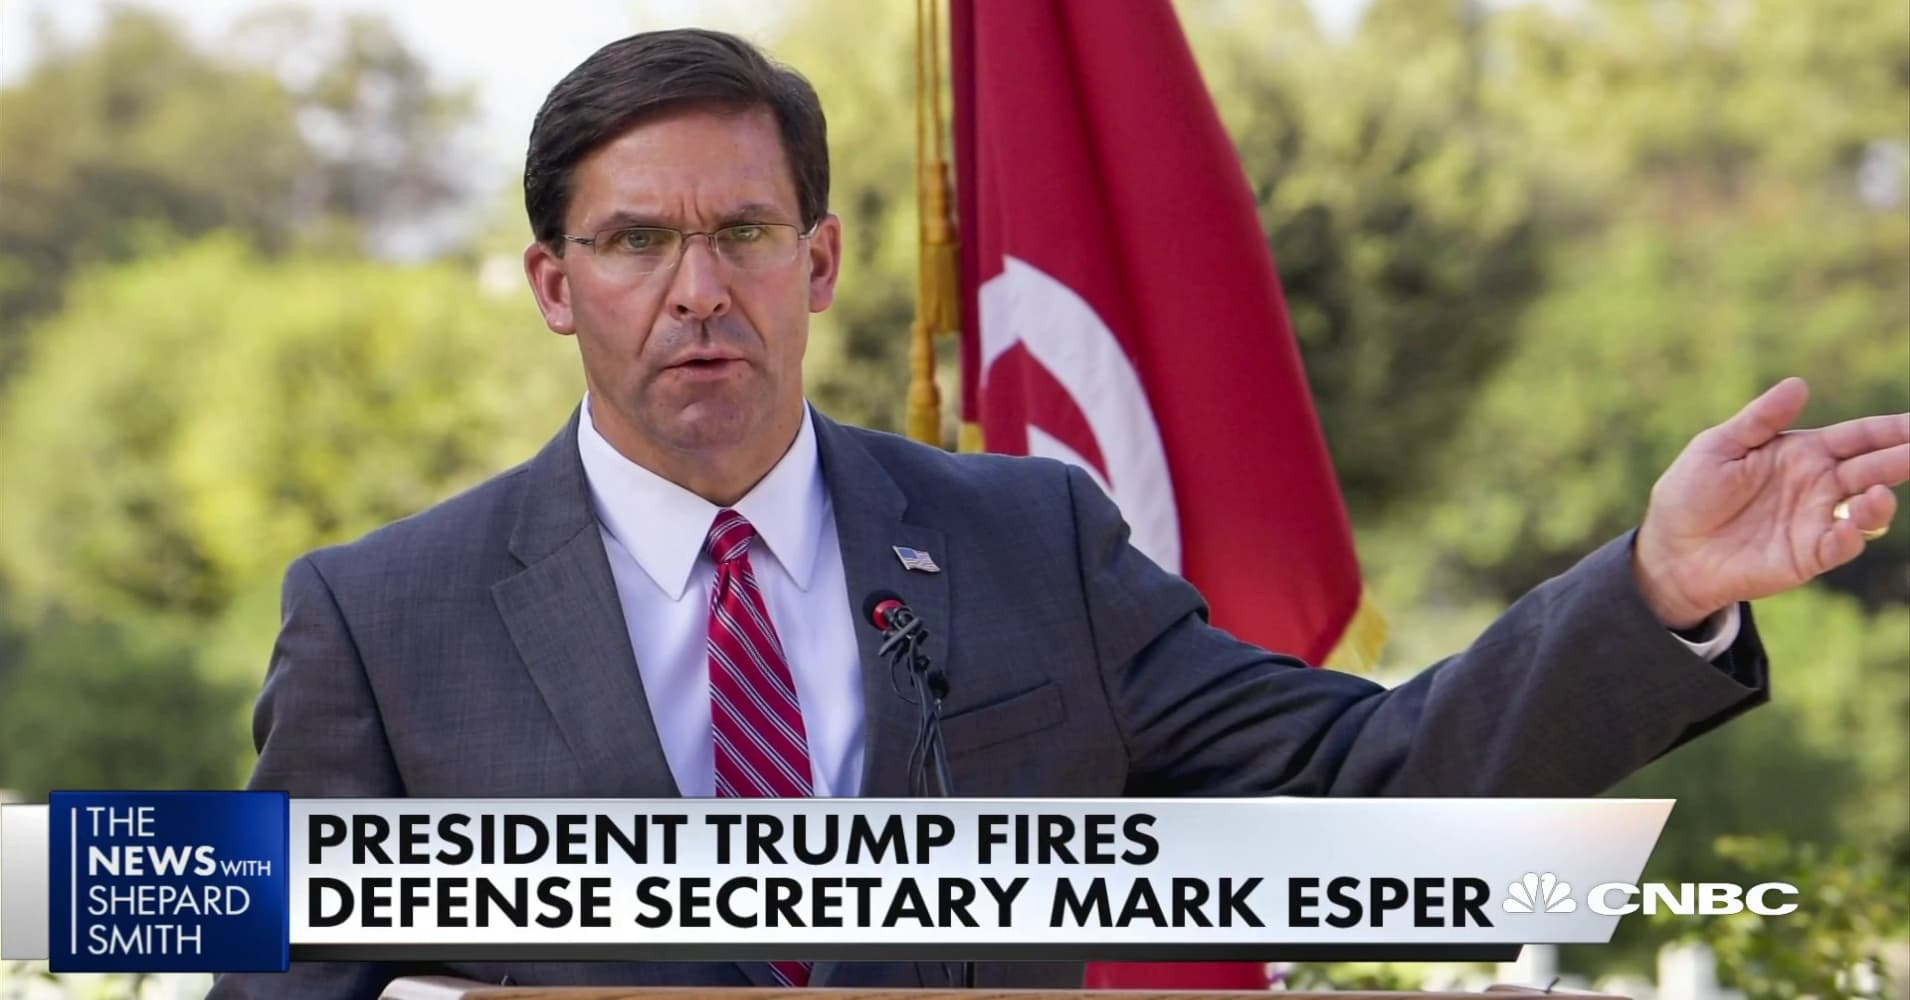 Trump loyalists promoted to powerful Pentagon roles after Esper firing